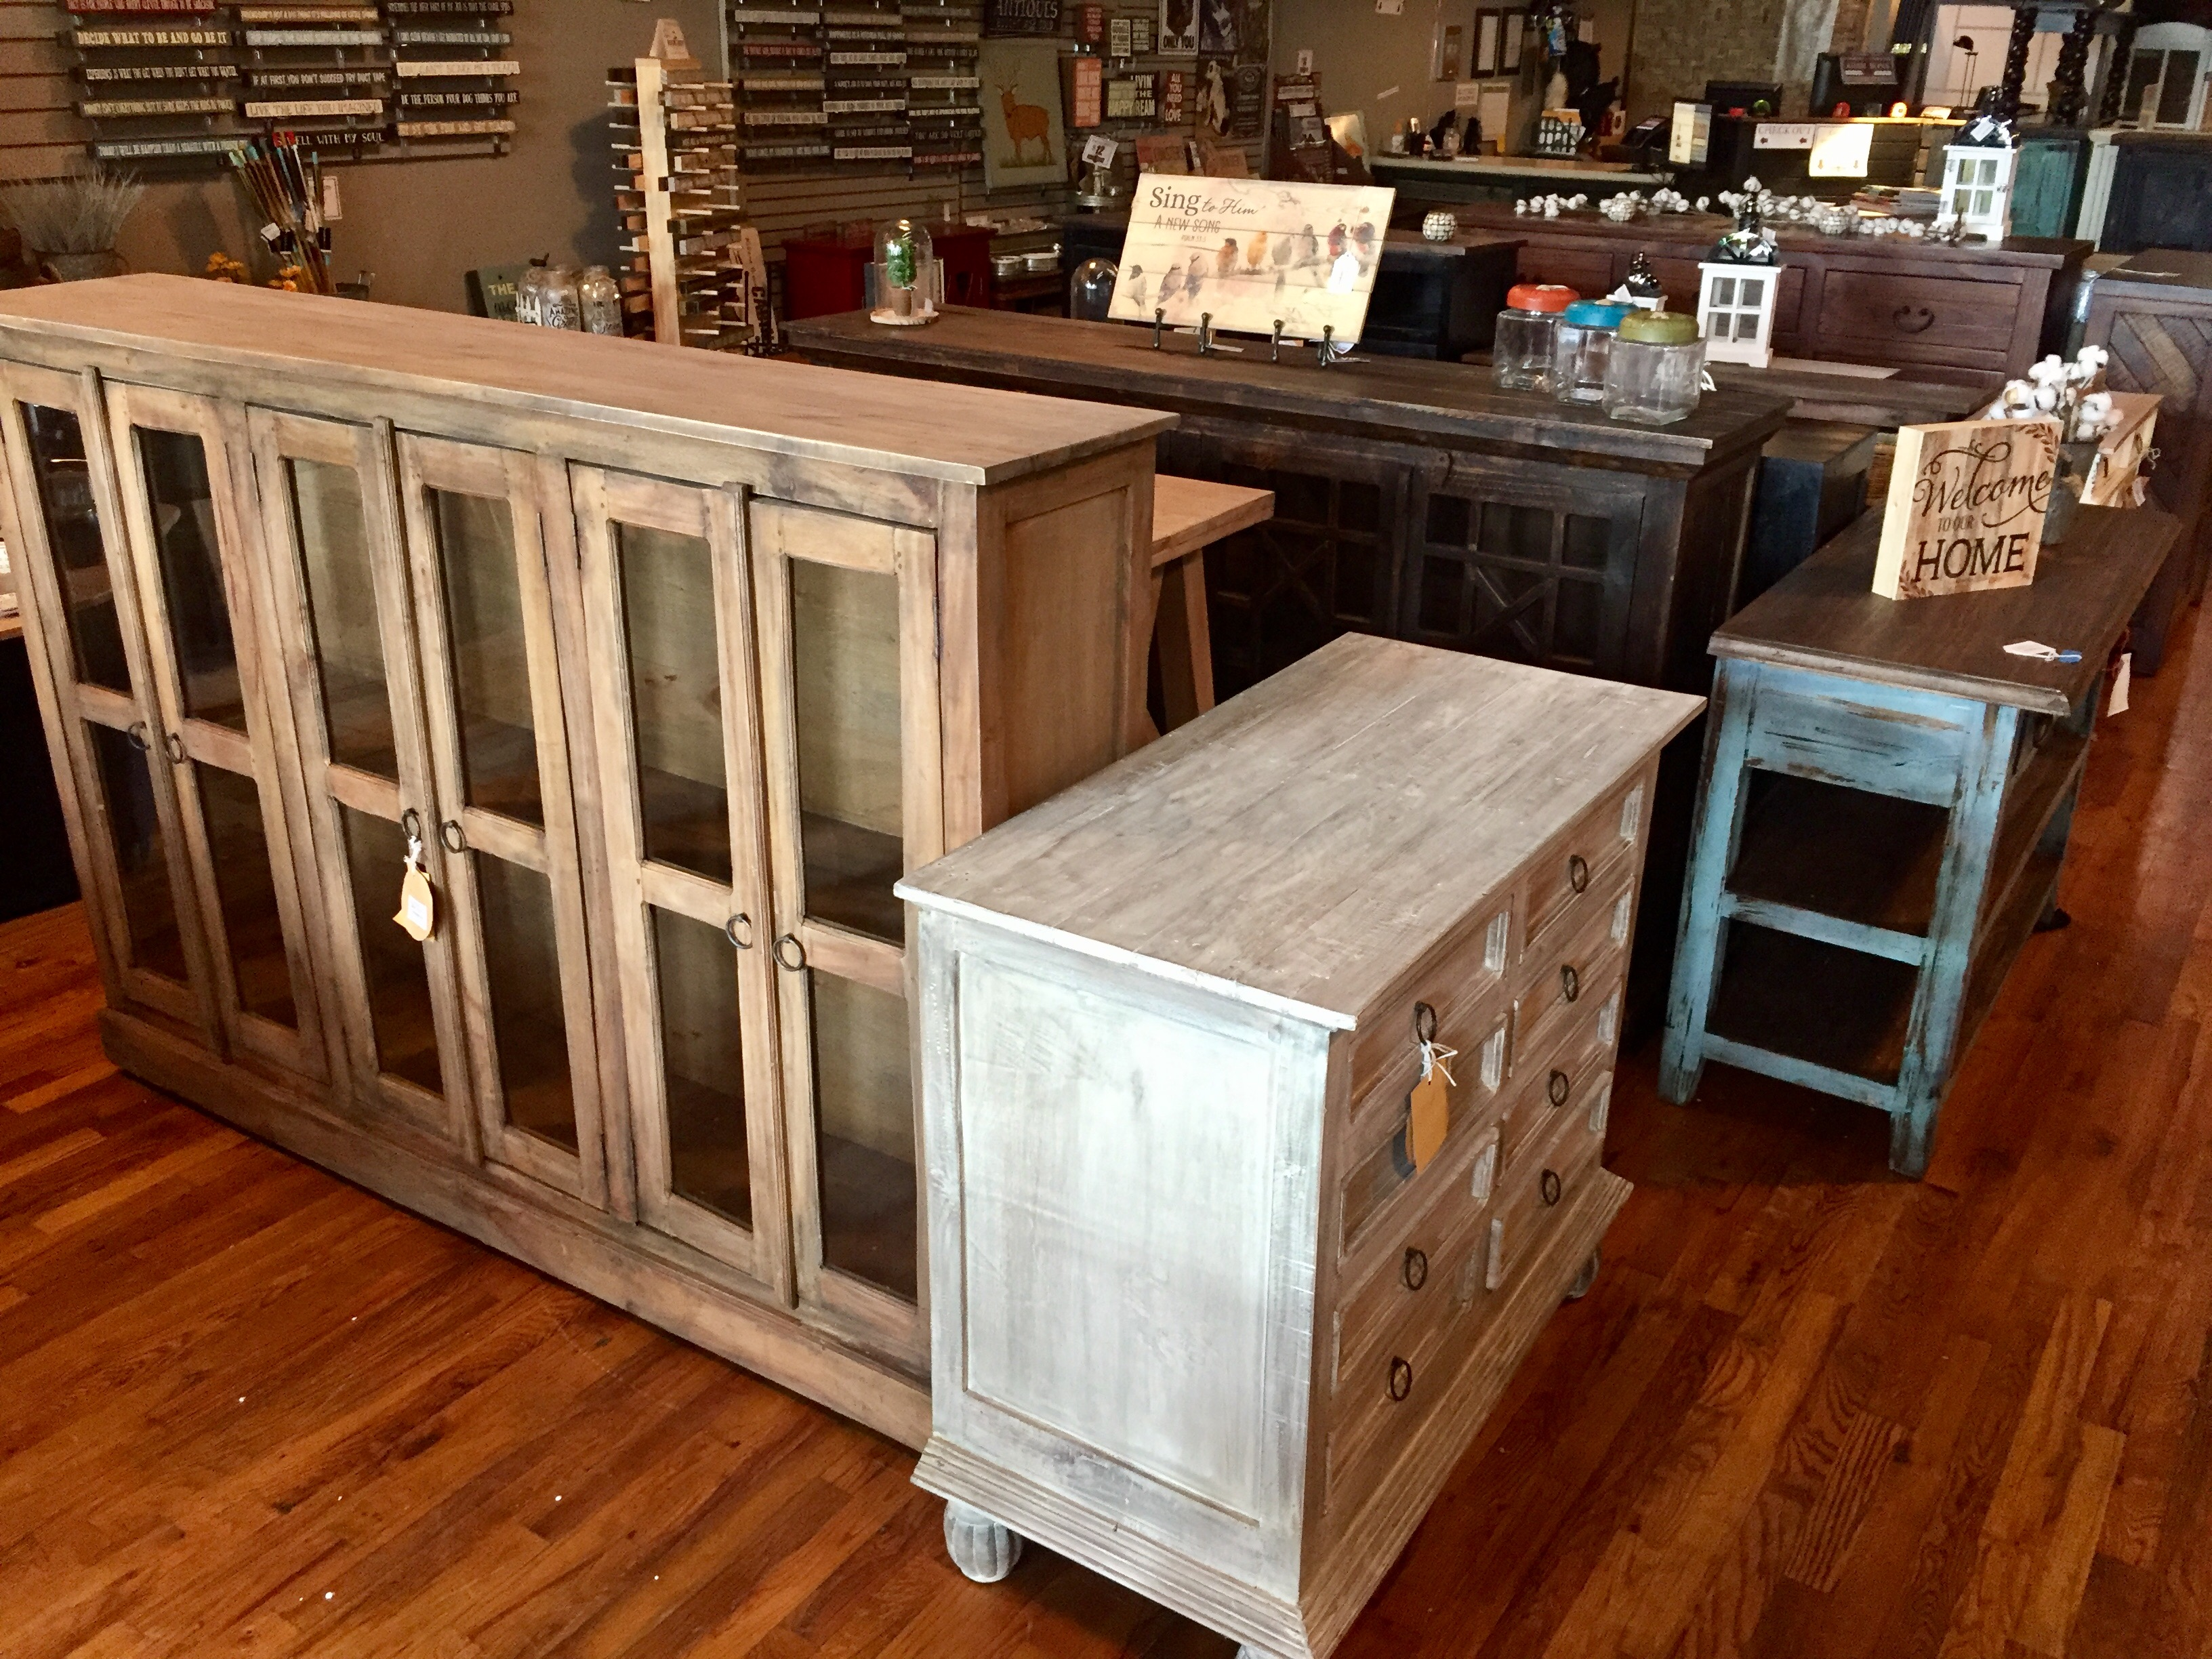 Welcome To The Website For Adam U0026 Sons, A Store In Downtown Carrollton GA,  Which Sells Rustic Furniture, Home Decor And More!